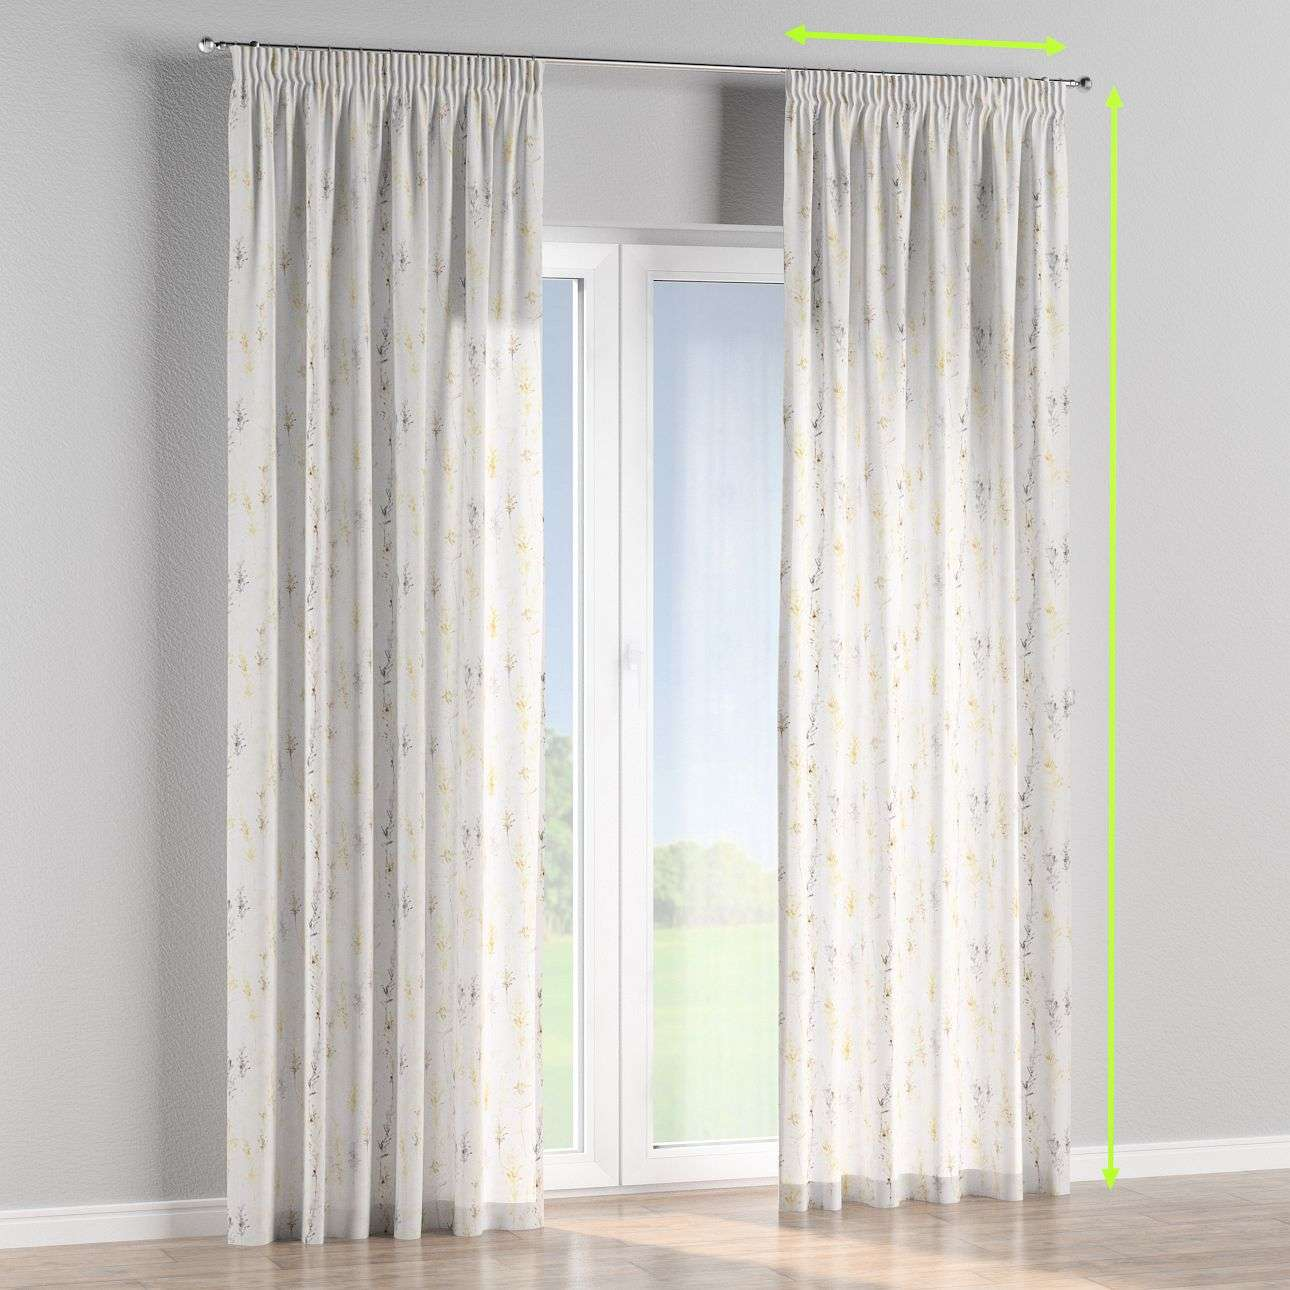 Pencil pleat lined curtains in collection Acapulco, fabric: 141-36